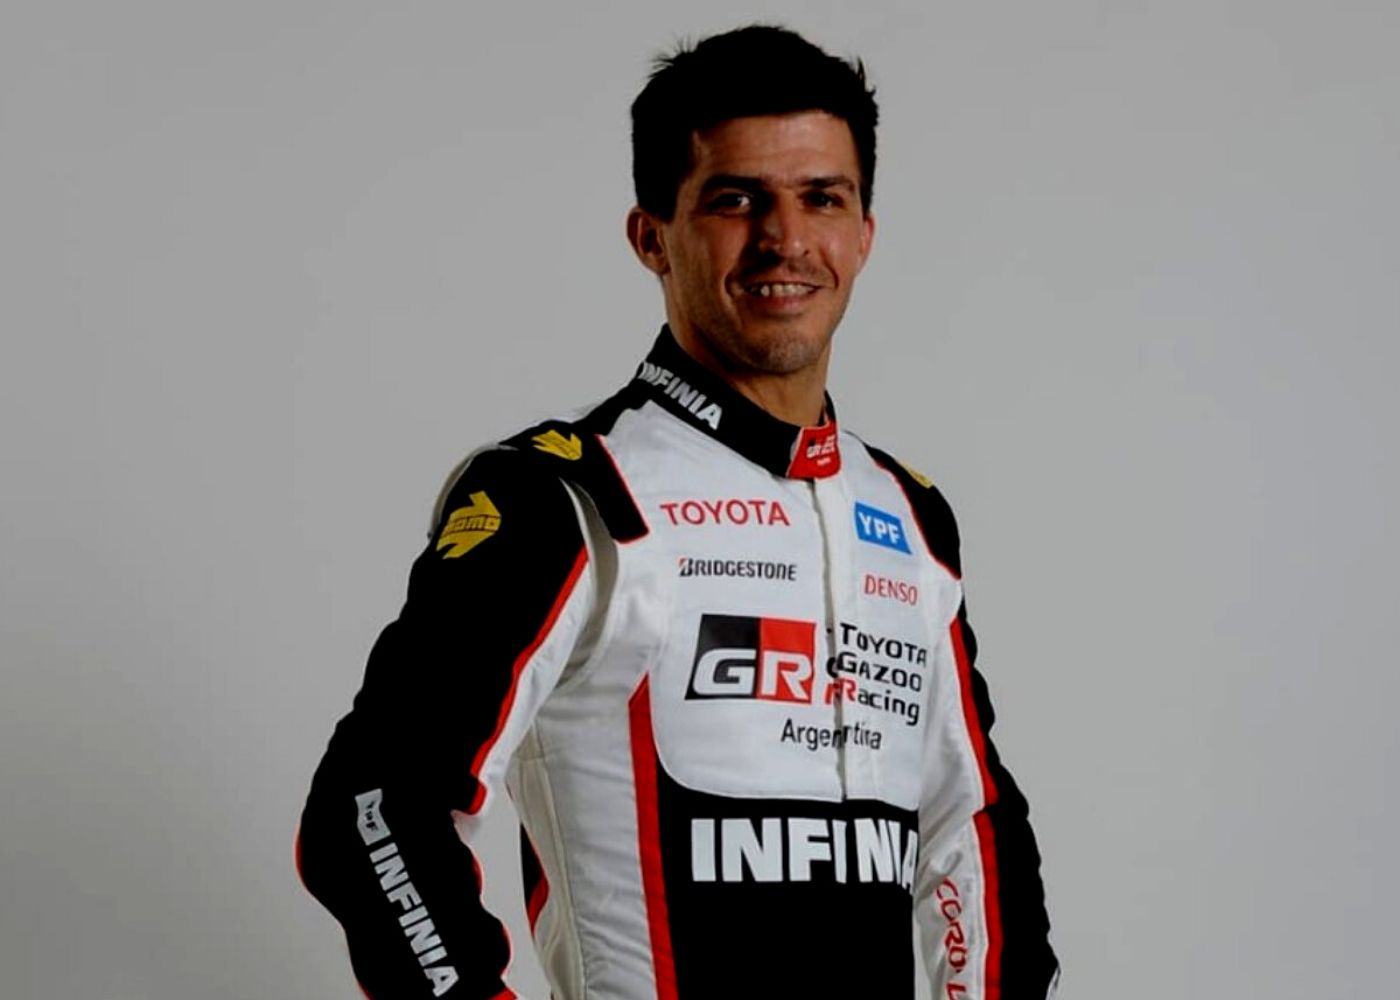 Photo of Hermano multicampeão, Matias Rossi, e Toyota Gazoo Racing integrarão a Full Time Sports em 2020